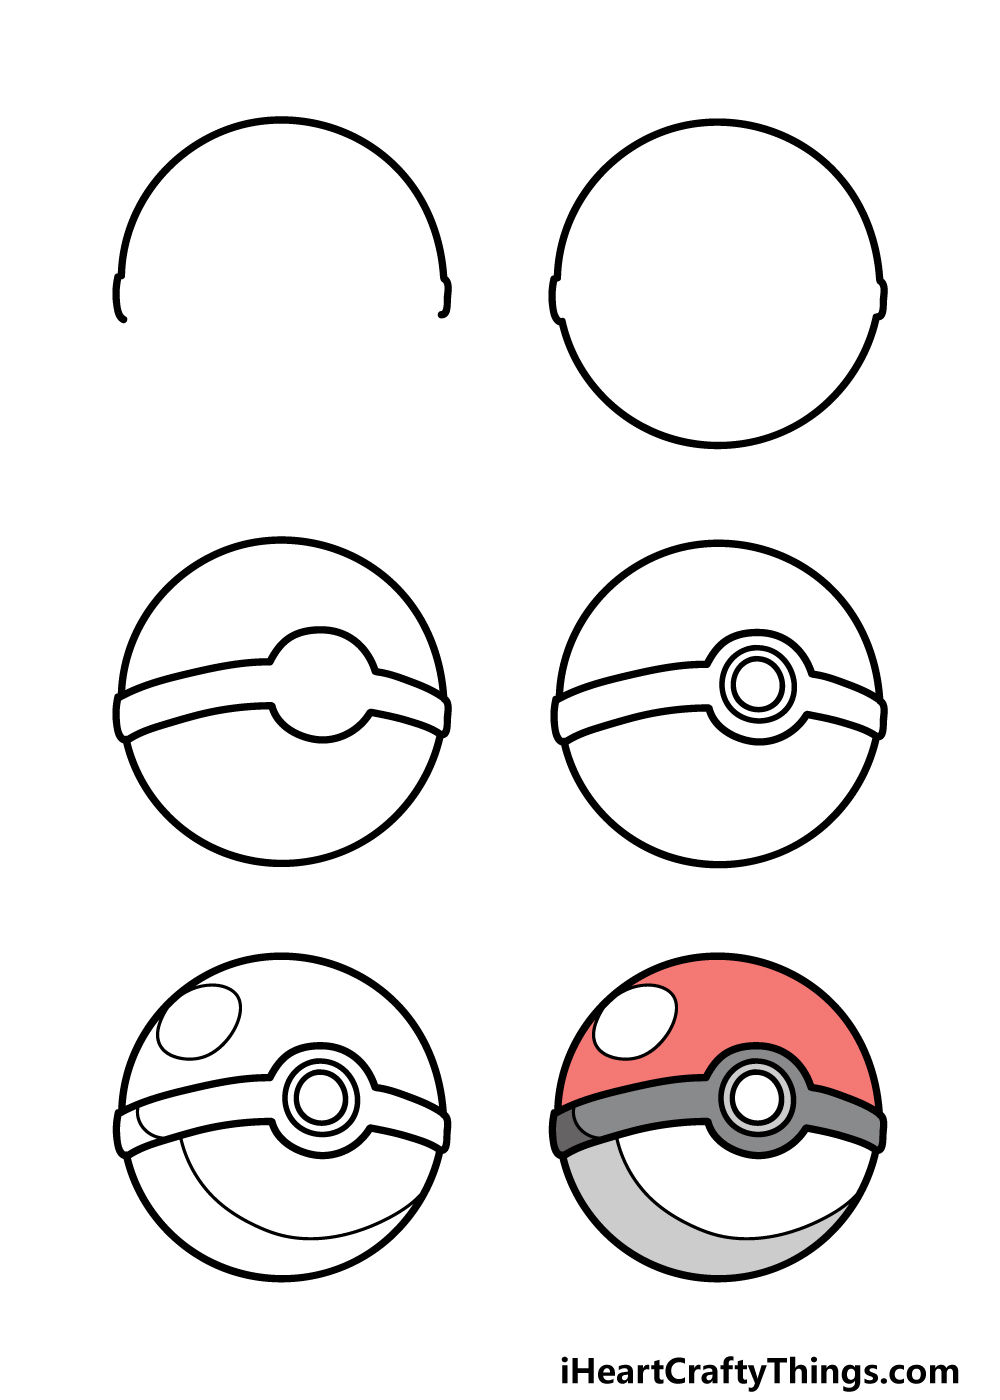 how to draw pokeball in 6 steps